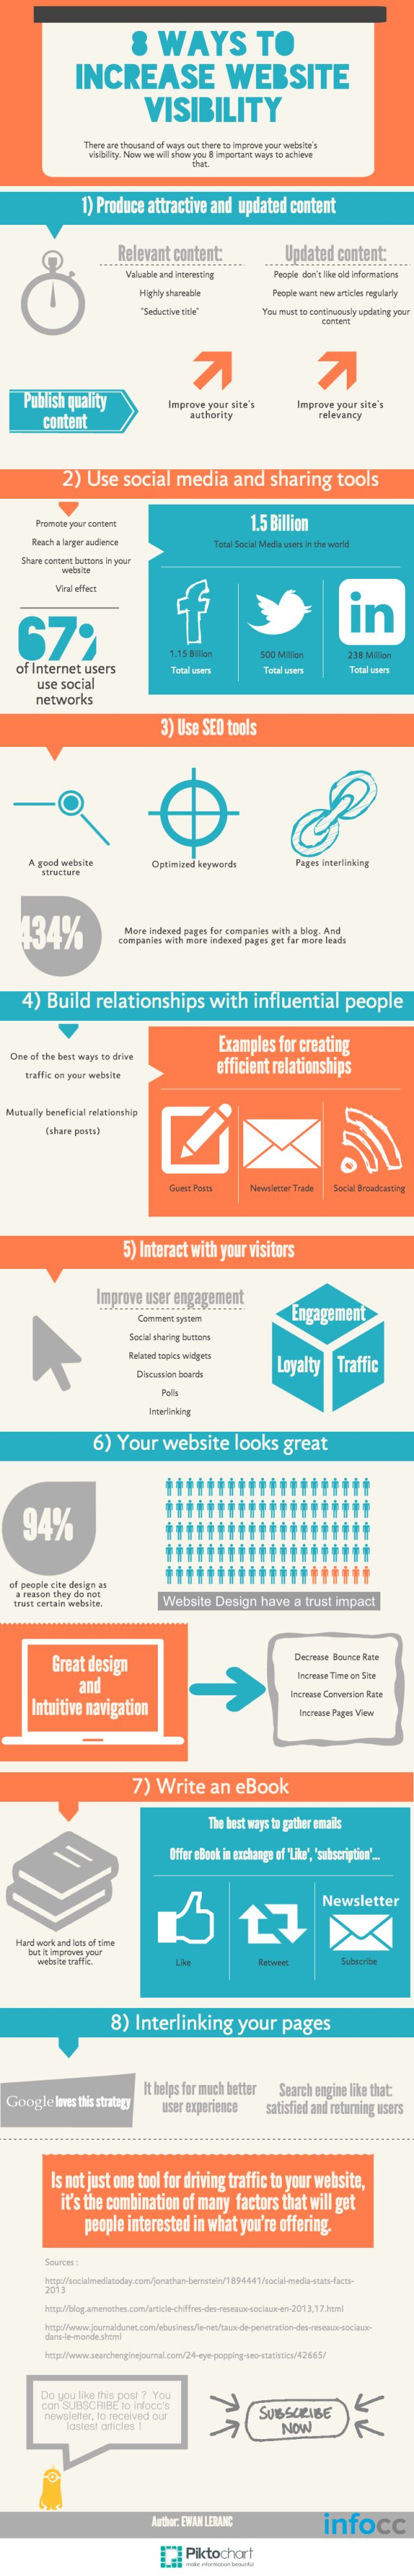 8 ways to increase website visibility #infografia #infographic #marketing